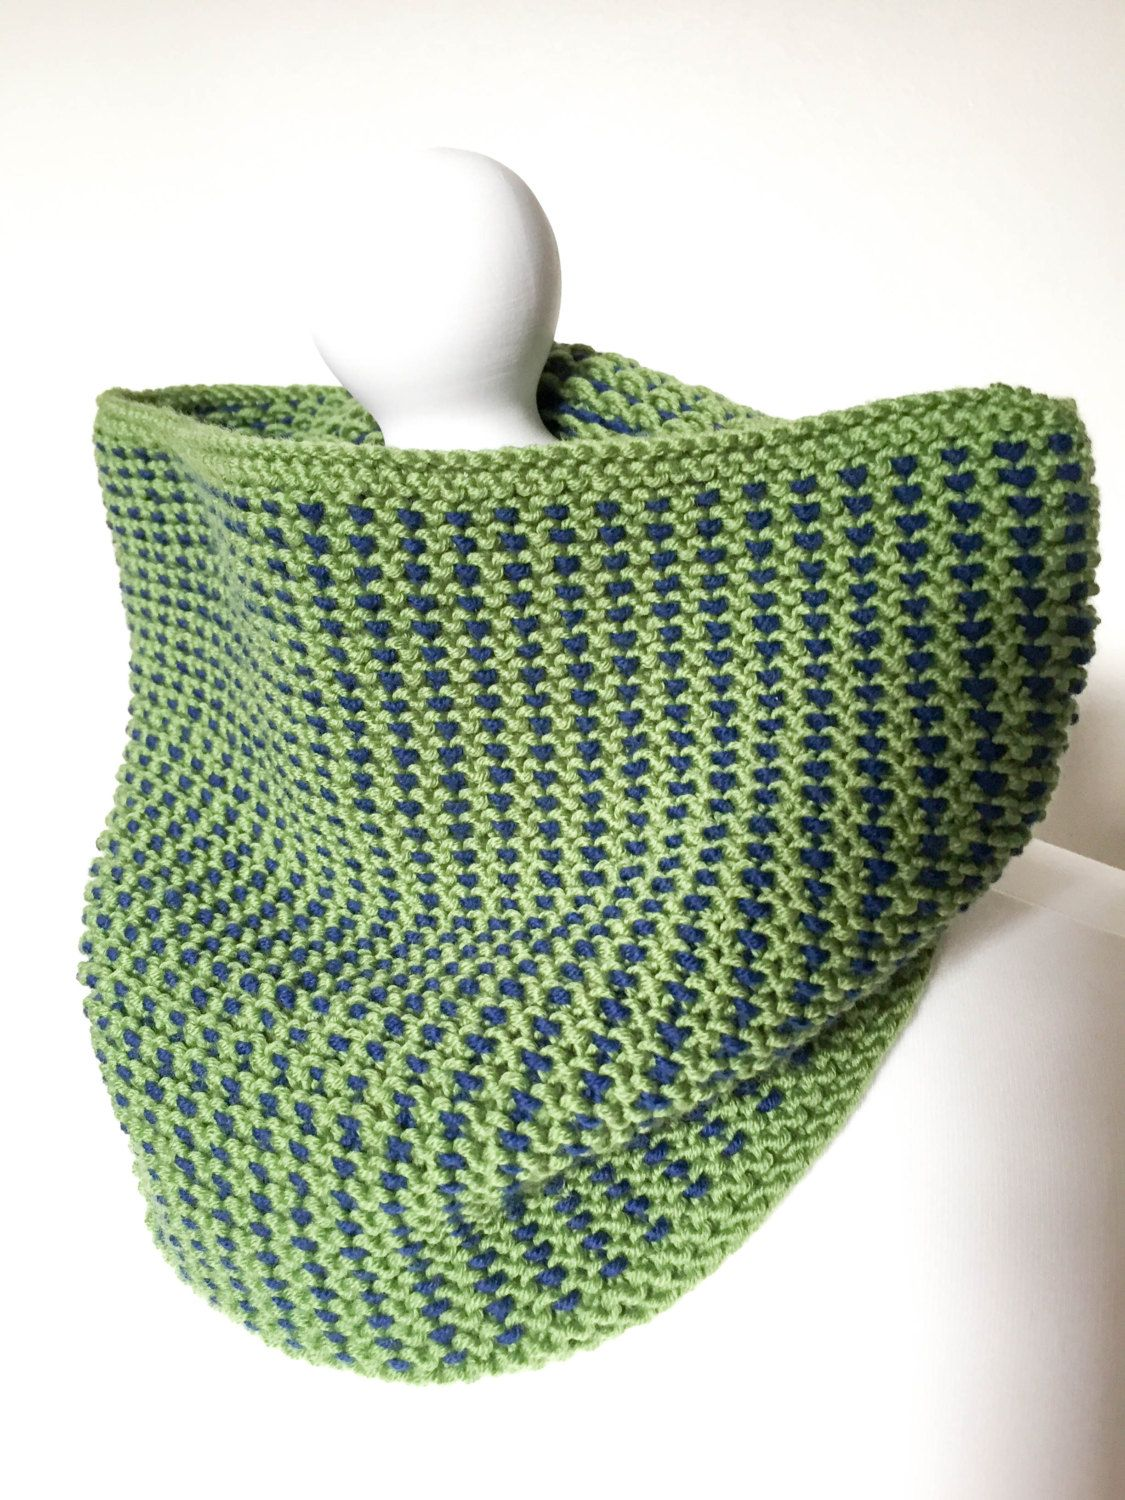 Woven look hand knit cowl by TheKnittingMoon on Etsy